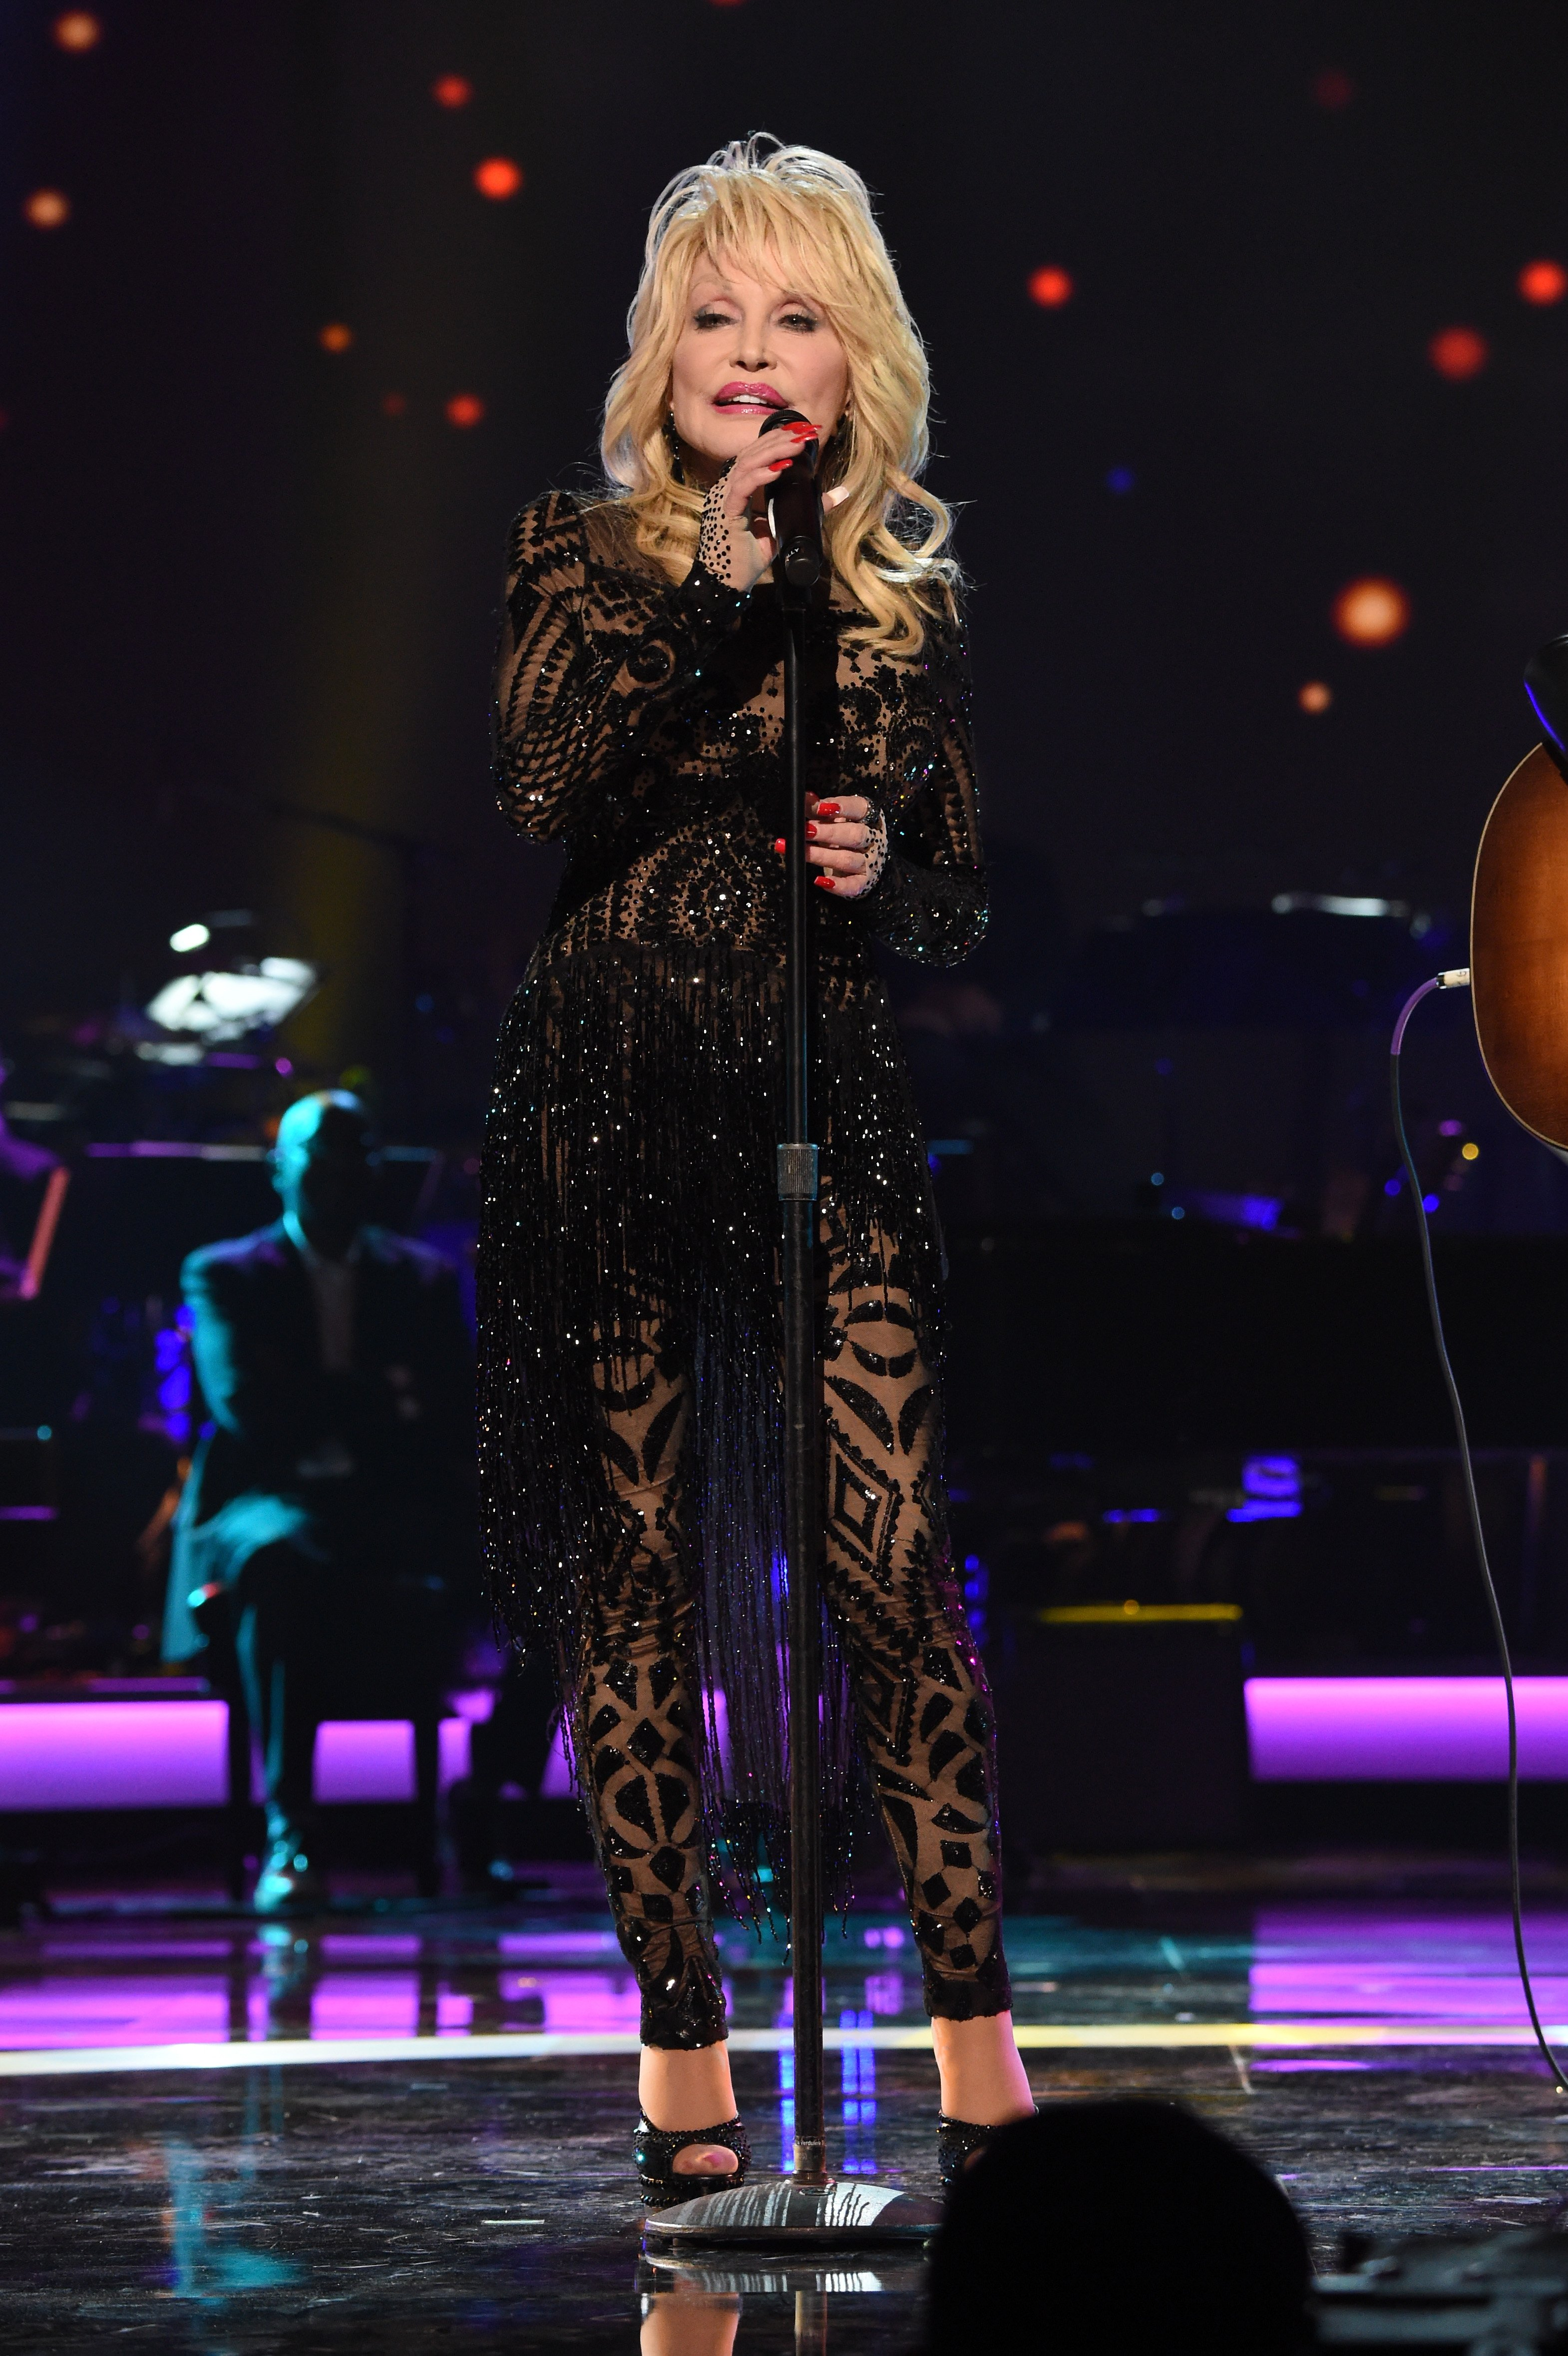 Dolly Parton performs onstage MusiCares Person of the Year at Los Angeles Convention Center on February 8, 2019. | Photo: GettyImages